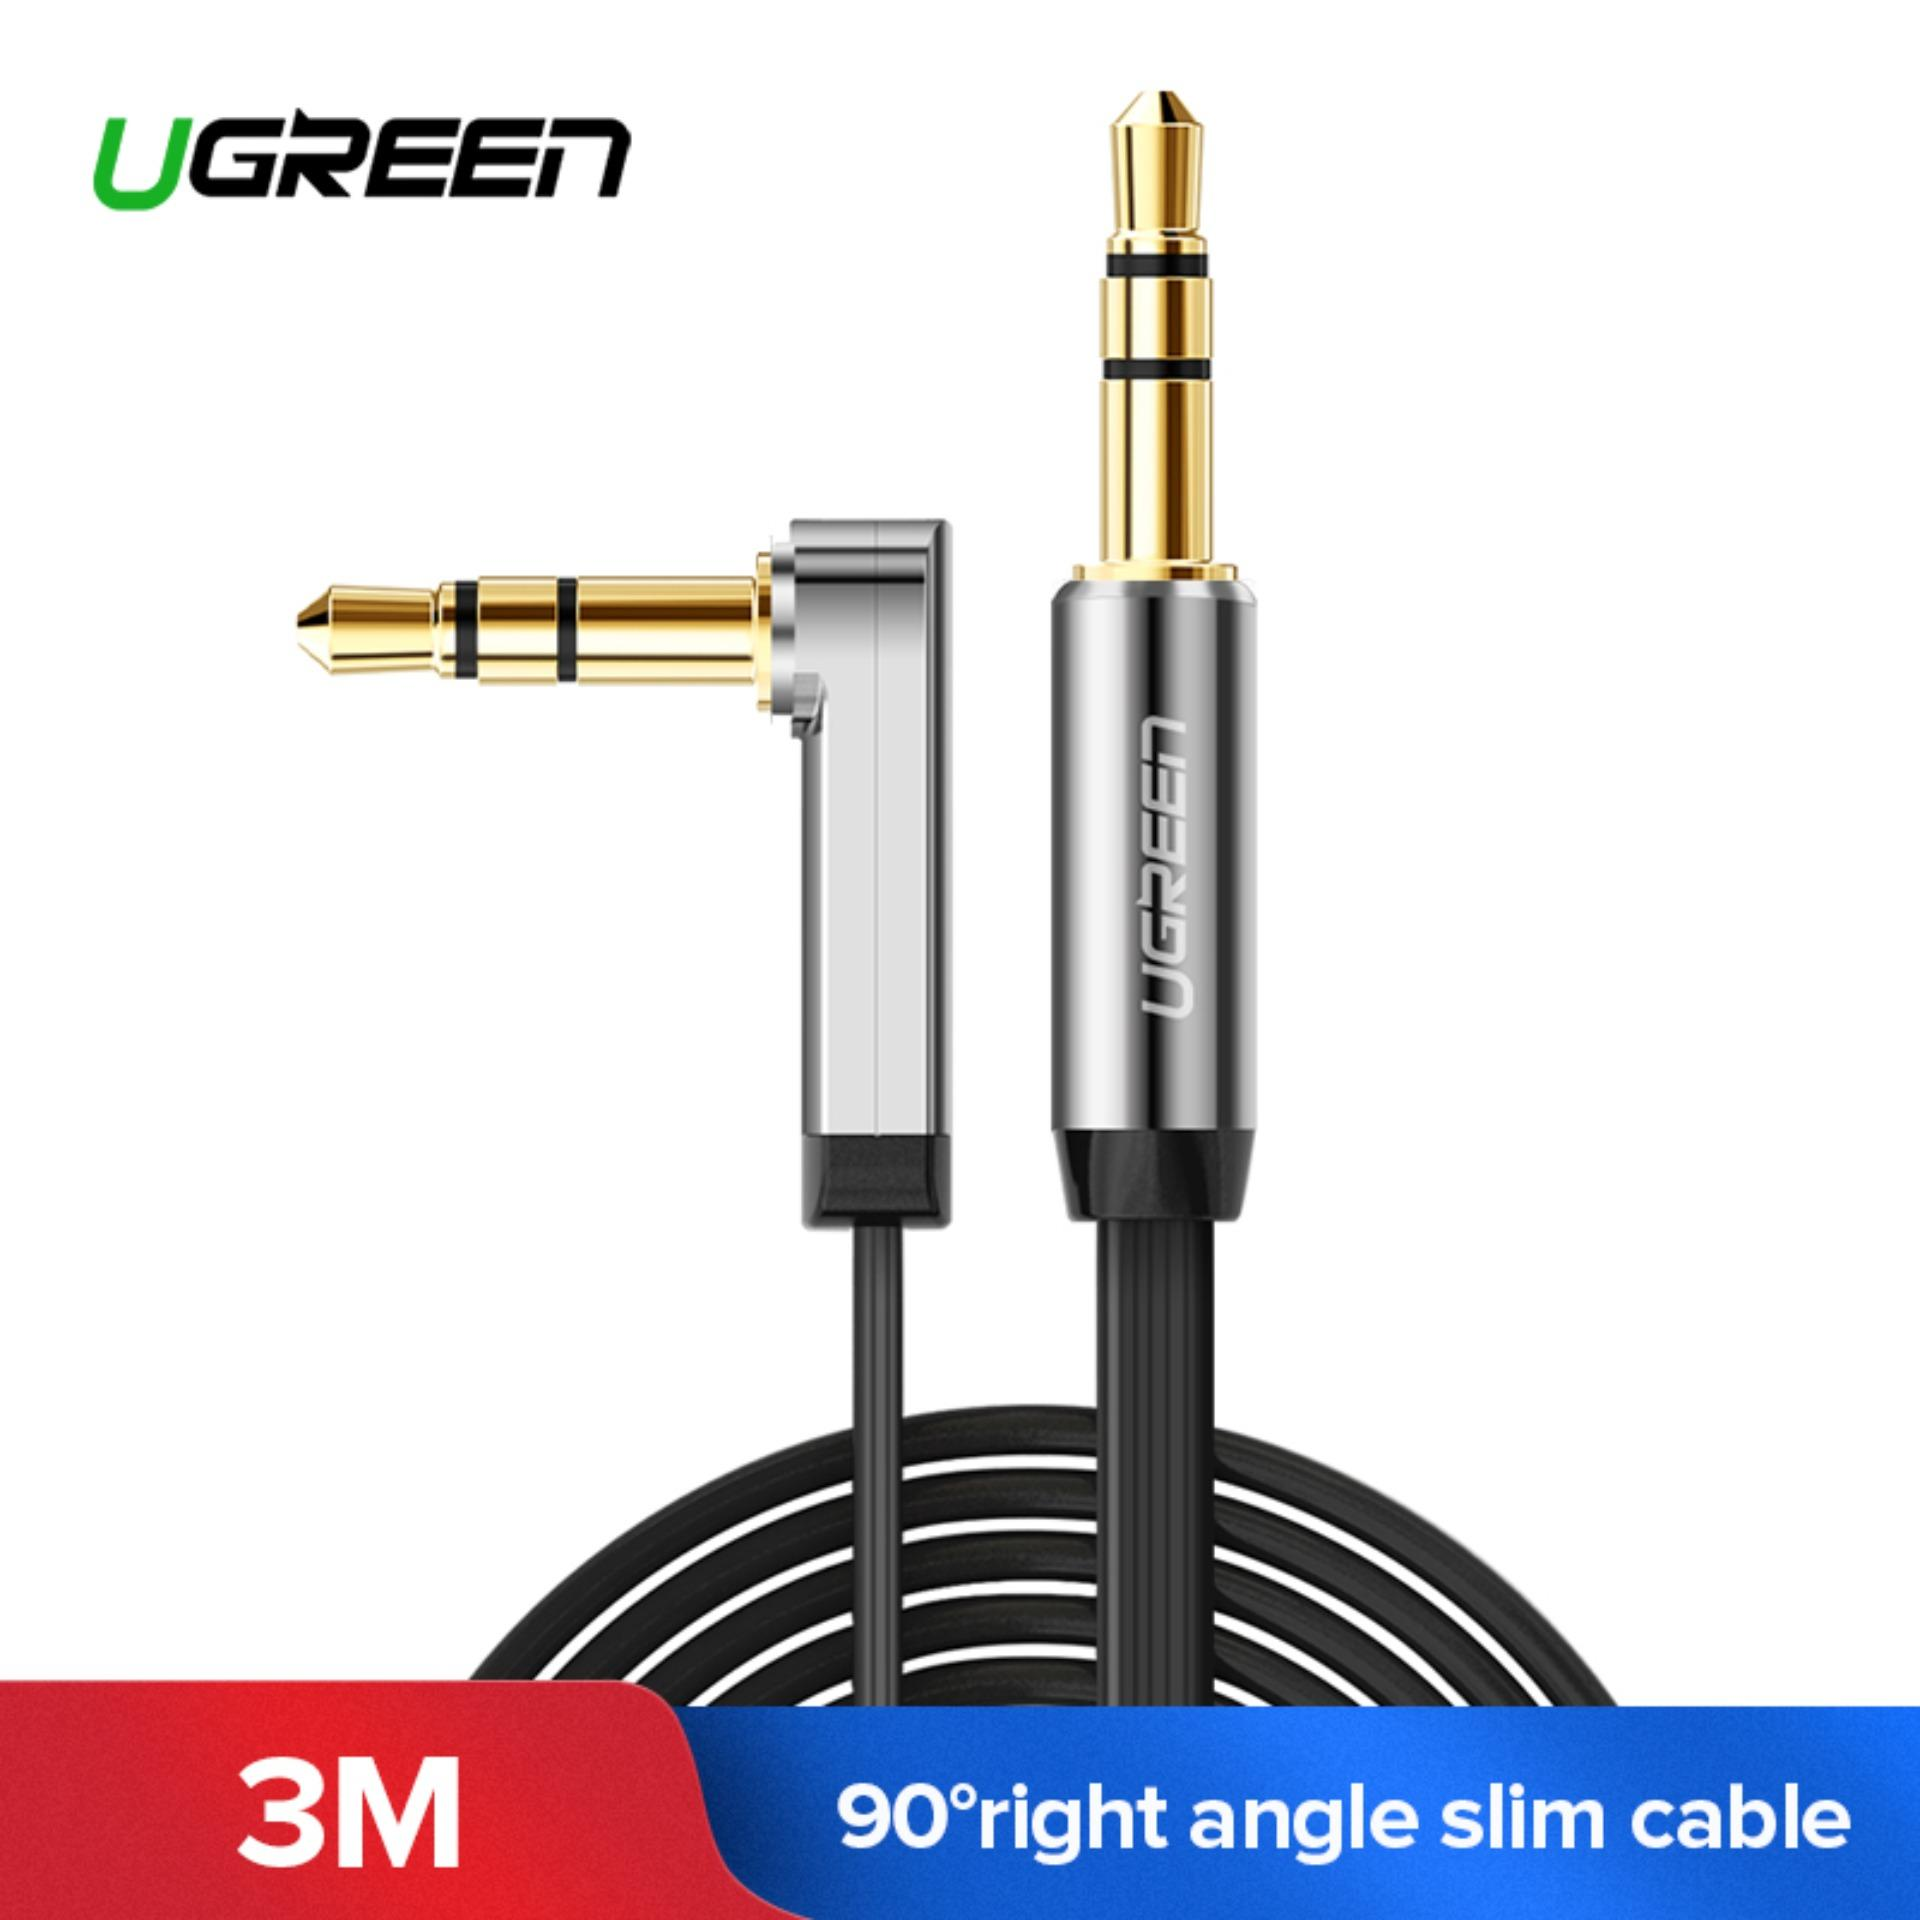 Audio Cable for sale - HDMI Cable prices, brands & specs in Philippines | Lazada.com.ph